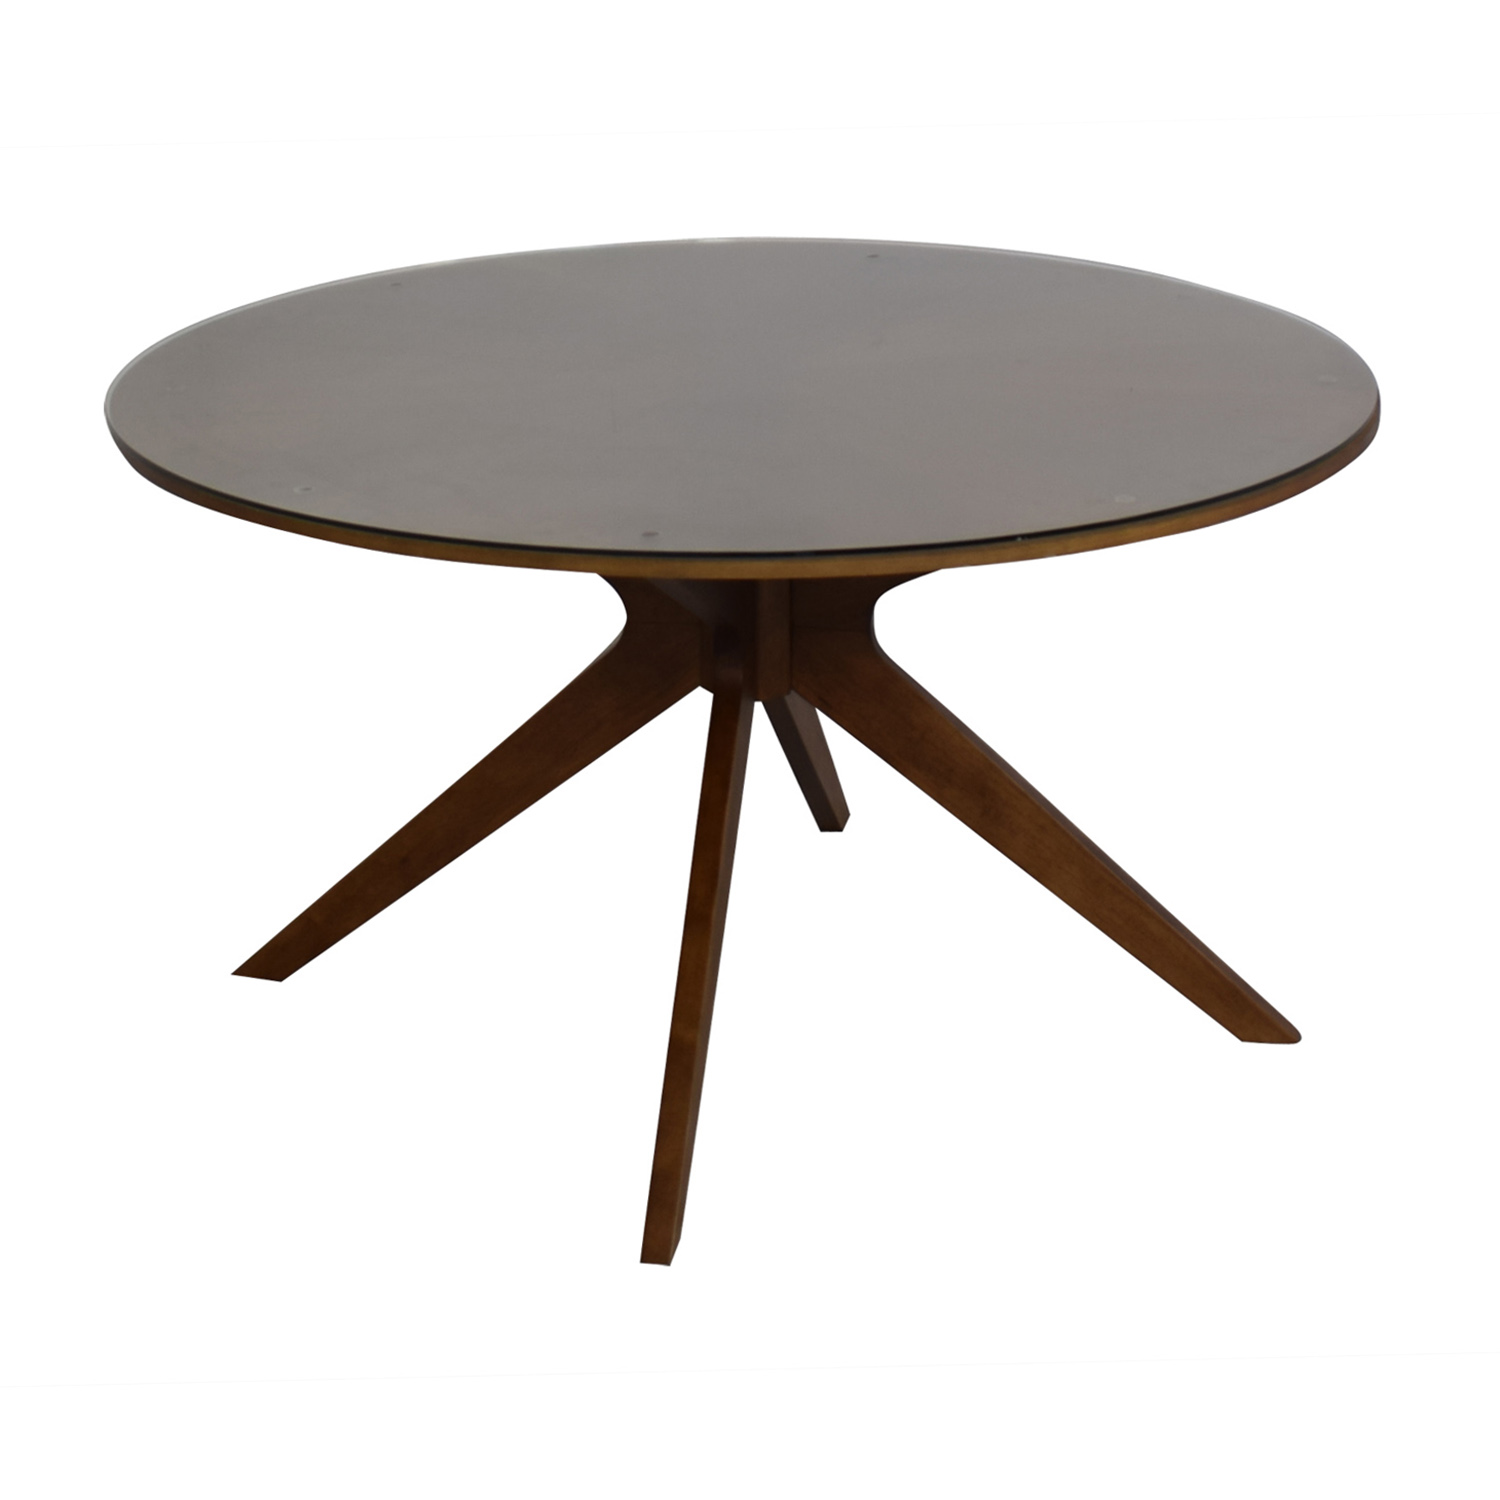 Article Article Midcentury Modern Round Table with Glass Top nj